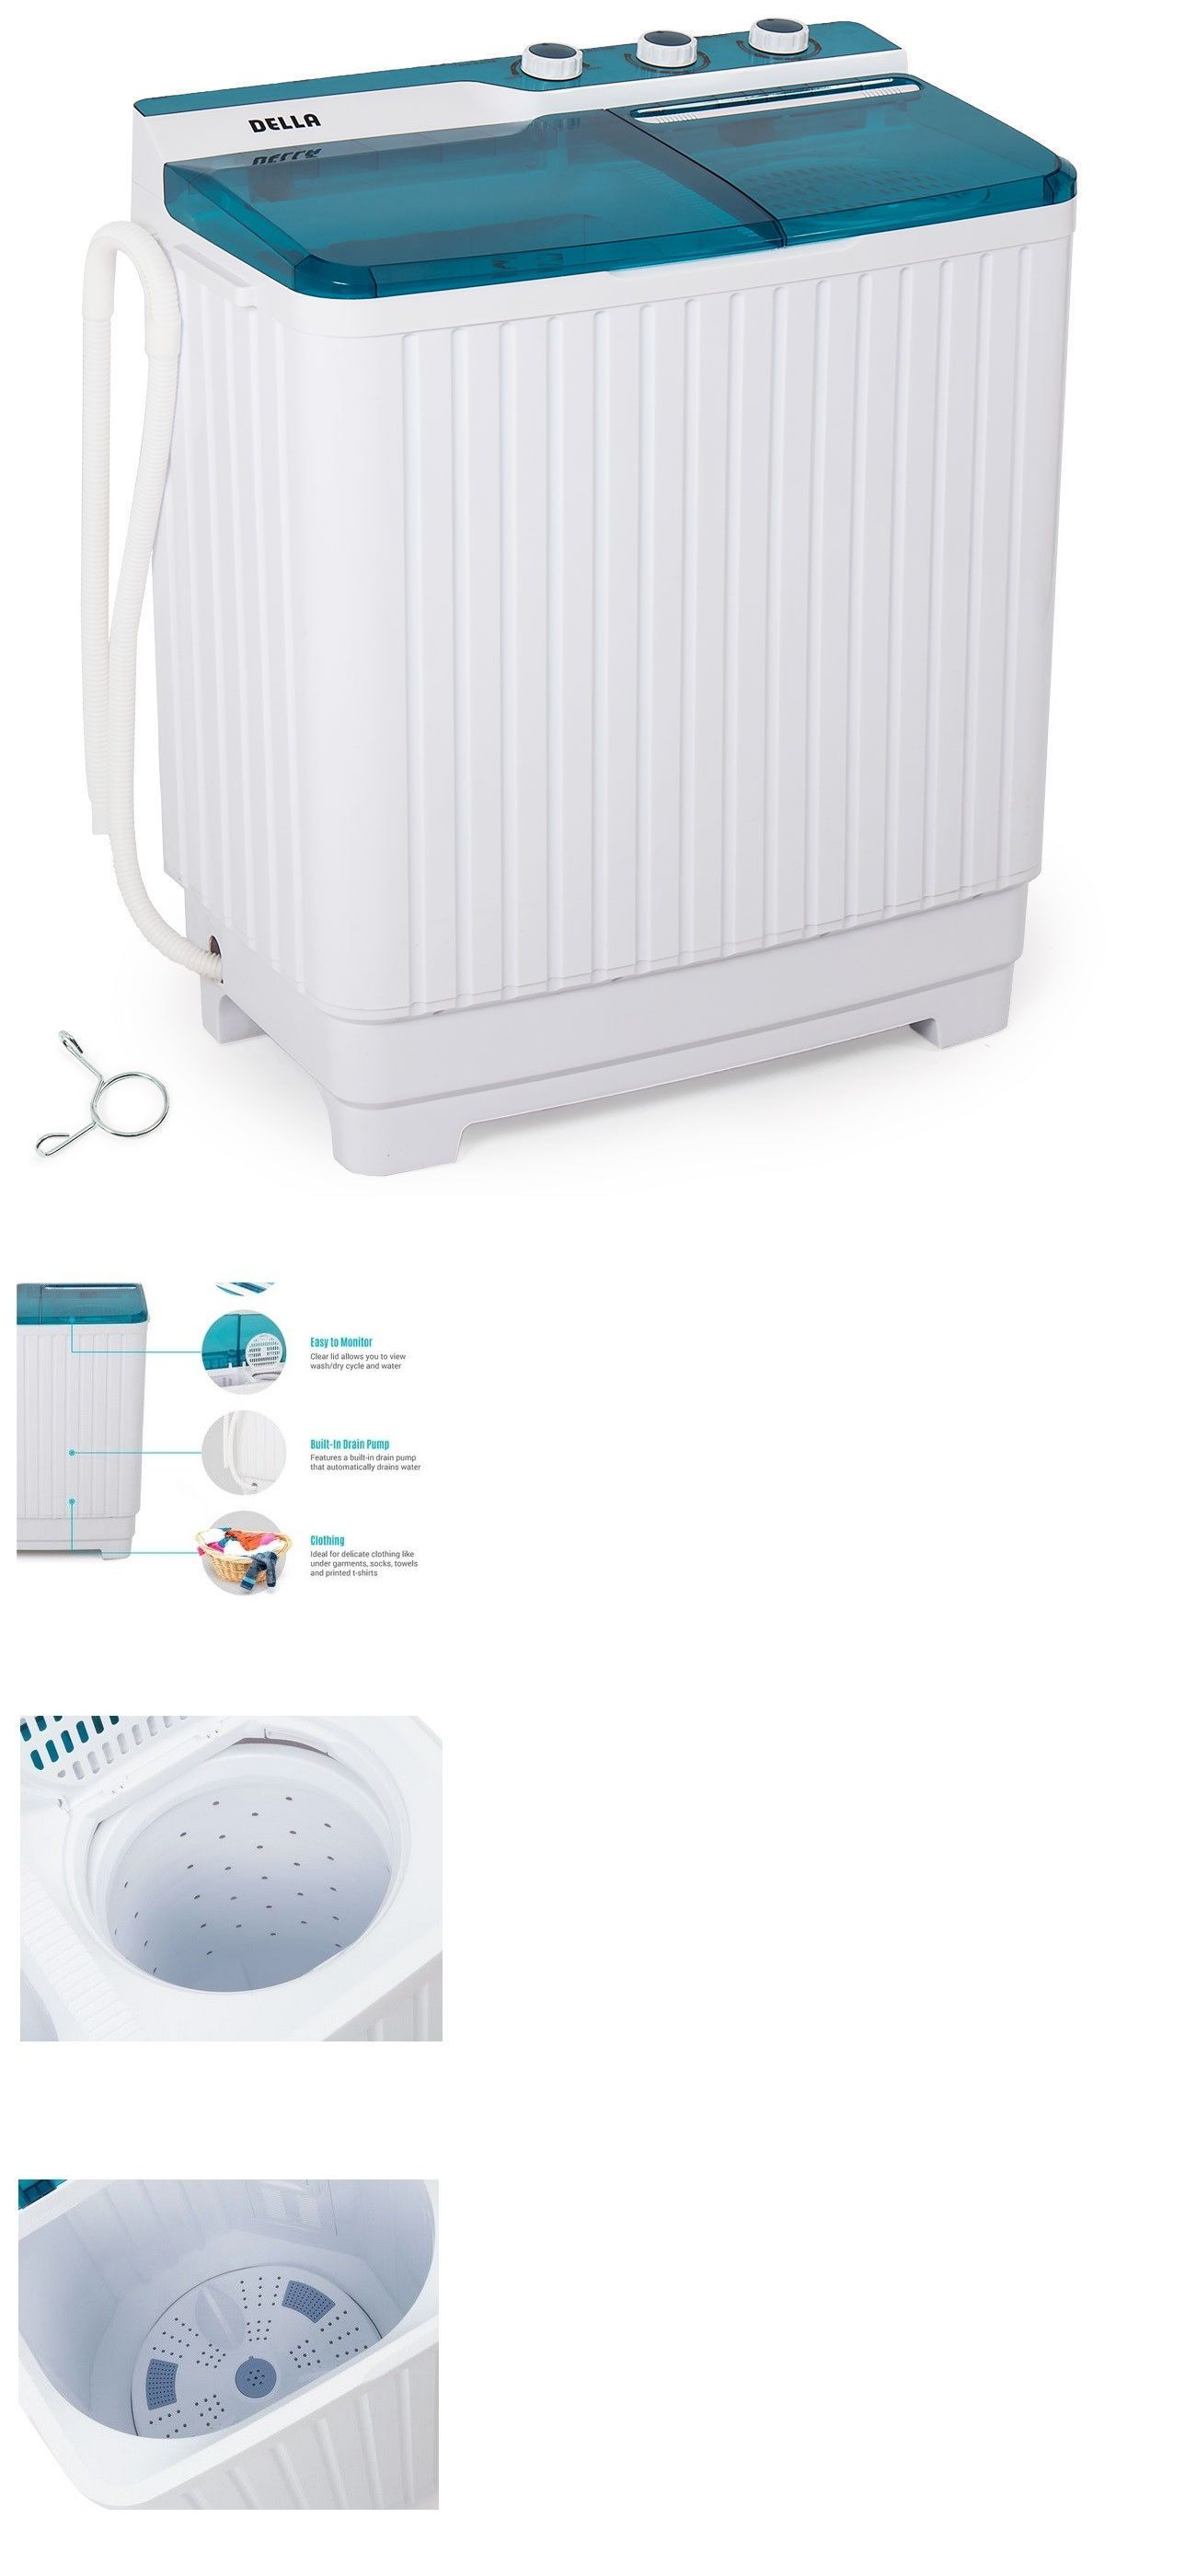 Washing Machines 71256 Portable Compact Twin Machine Washer Spin Dry Cycle 9kg Travel Rv Dorm It Now Only 143 99 On Ebay